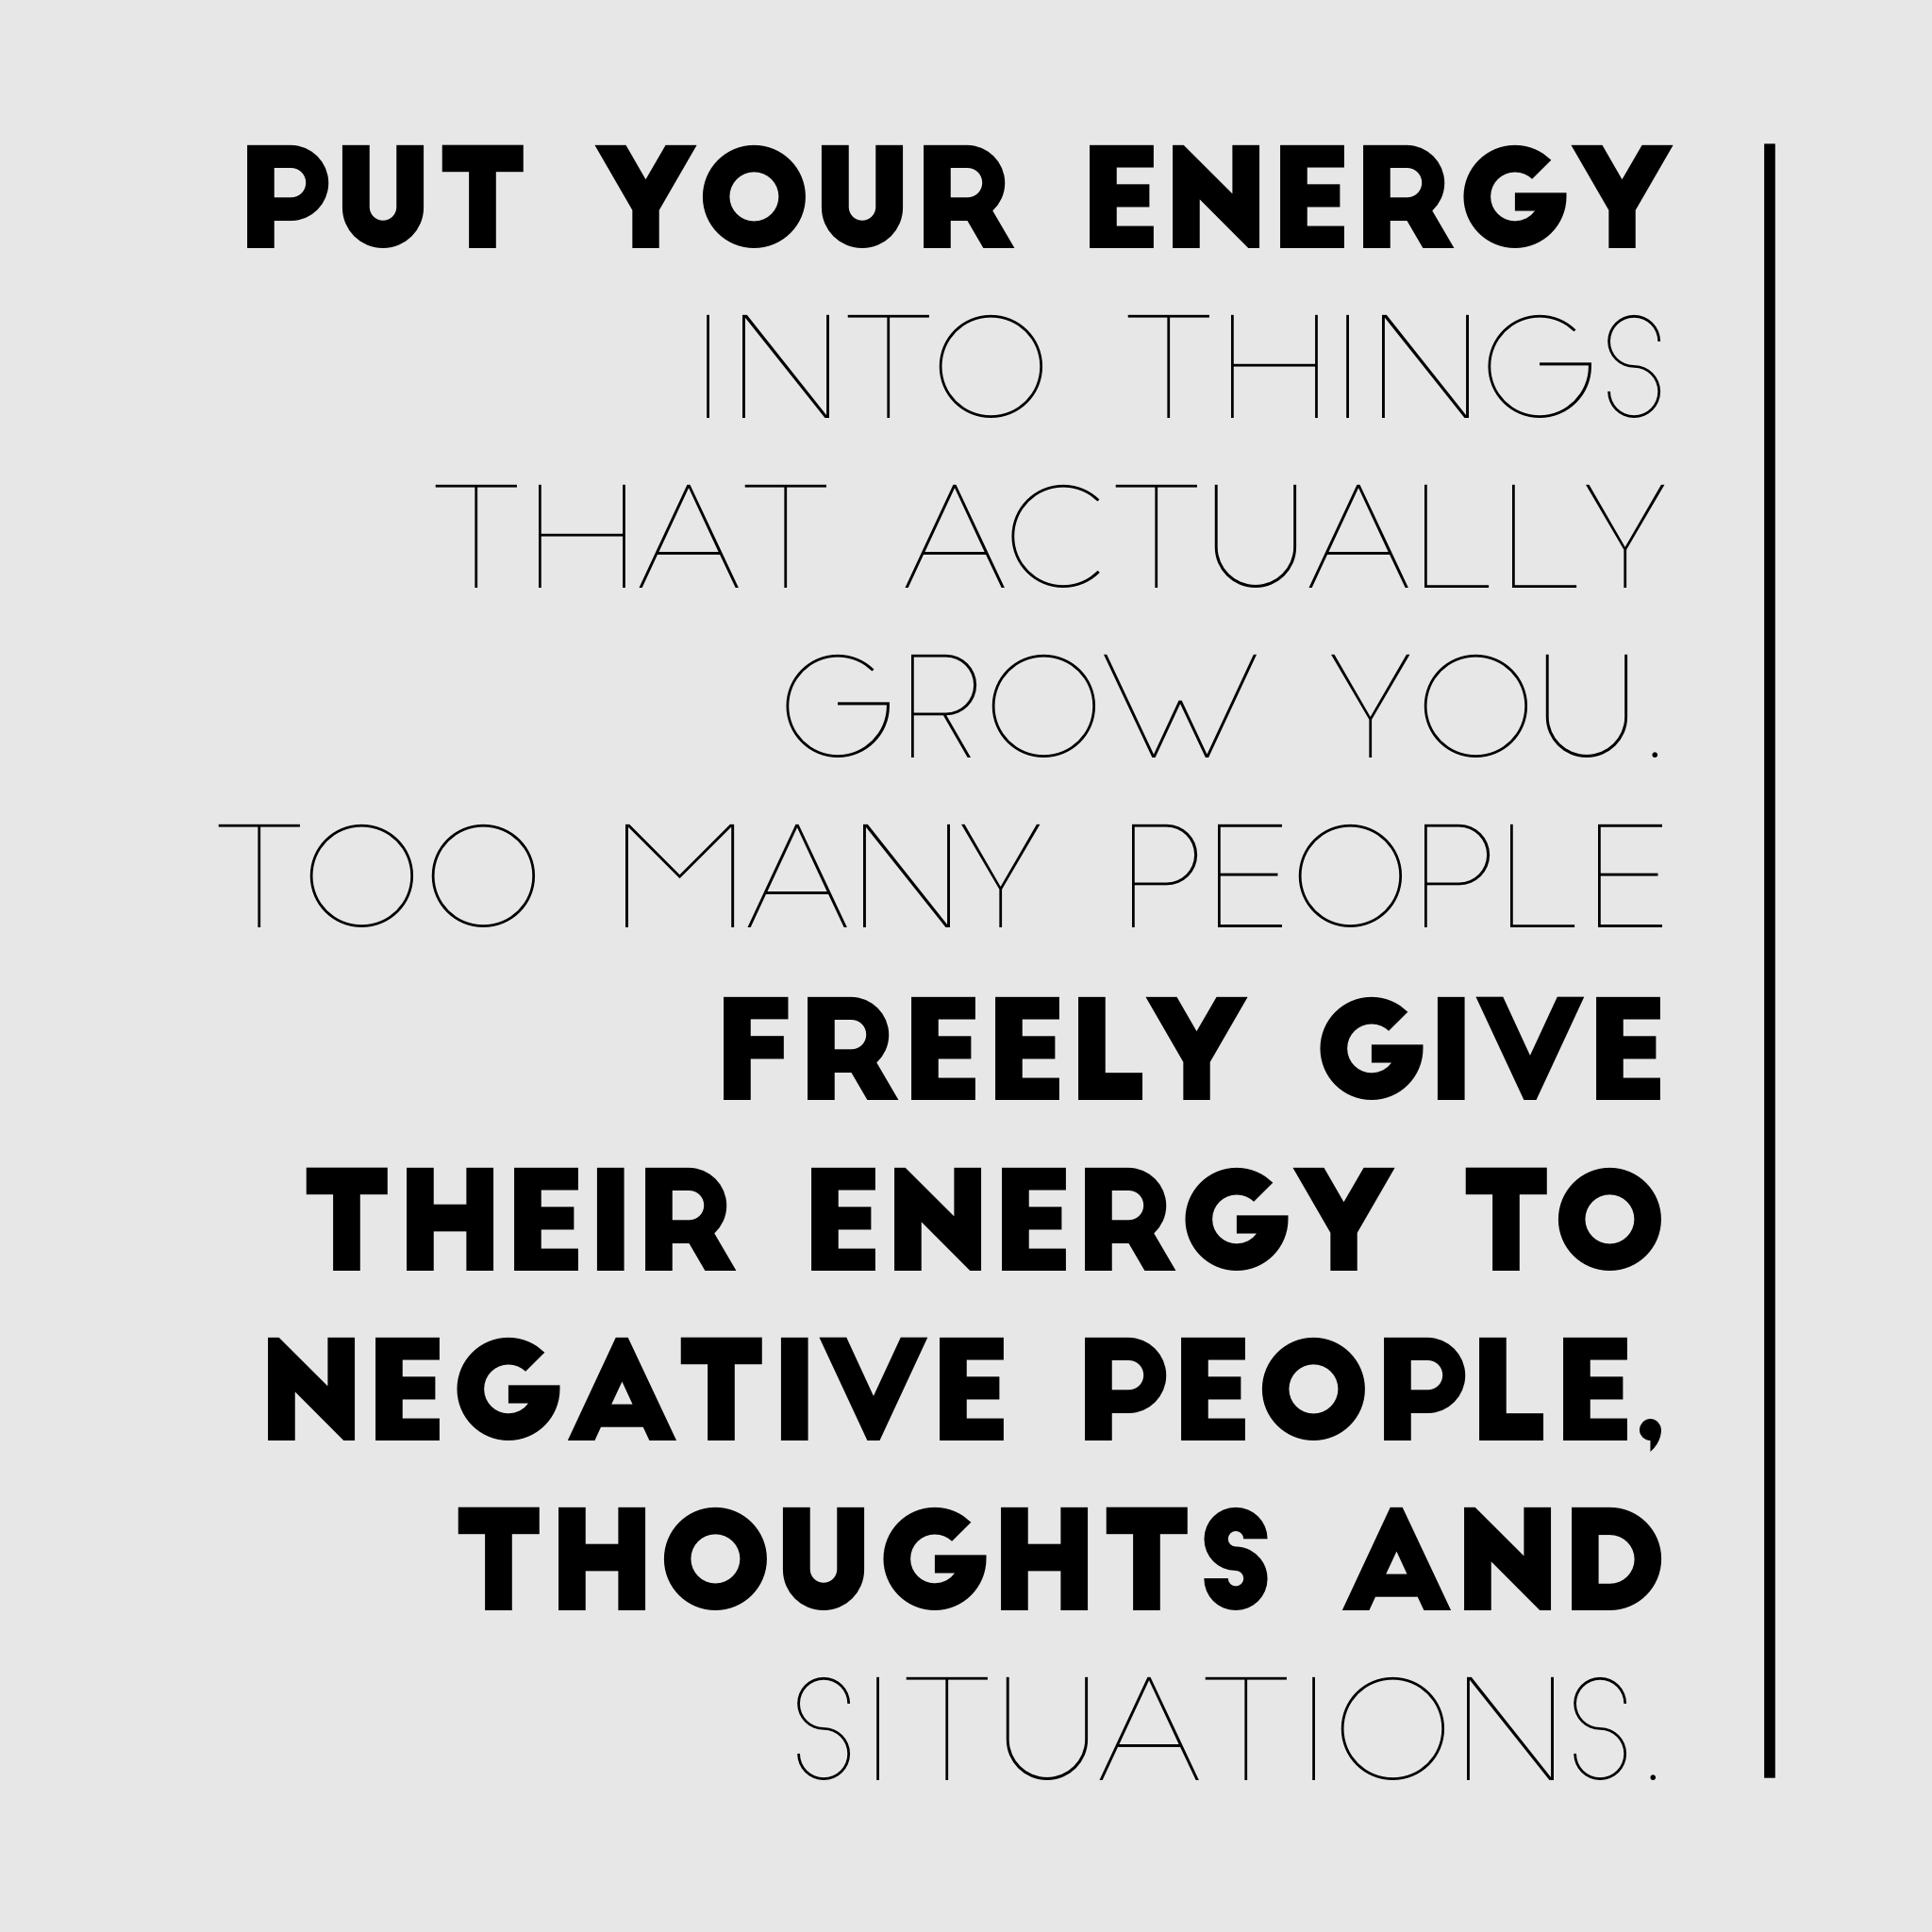 Wherever You Put Positive Energy Get It Back Should Never Waste Your Time Or On Negative People Situations Thoughts